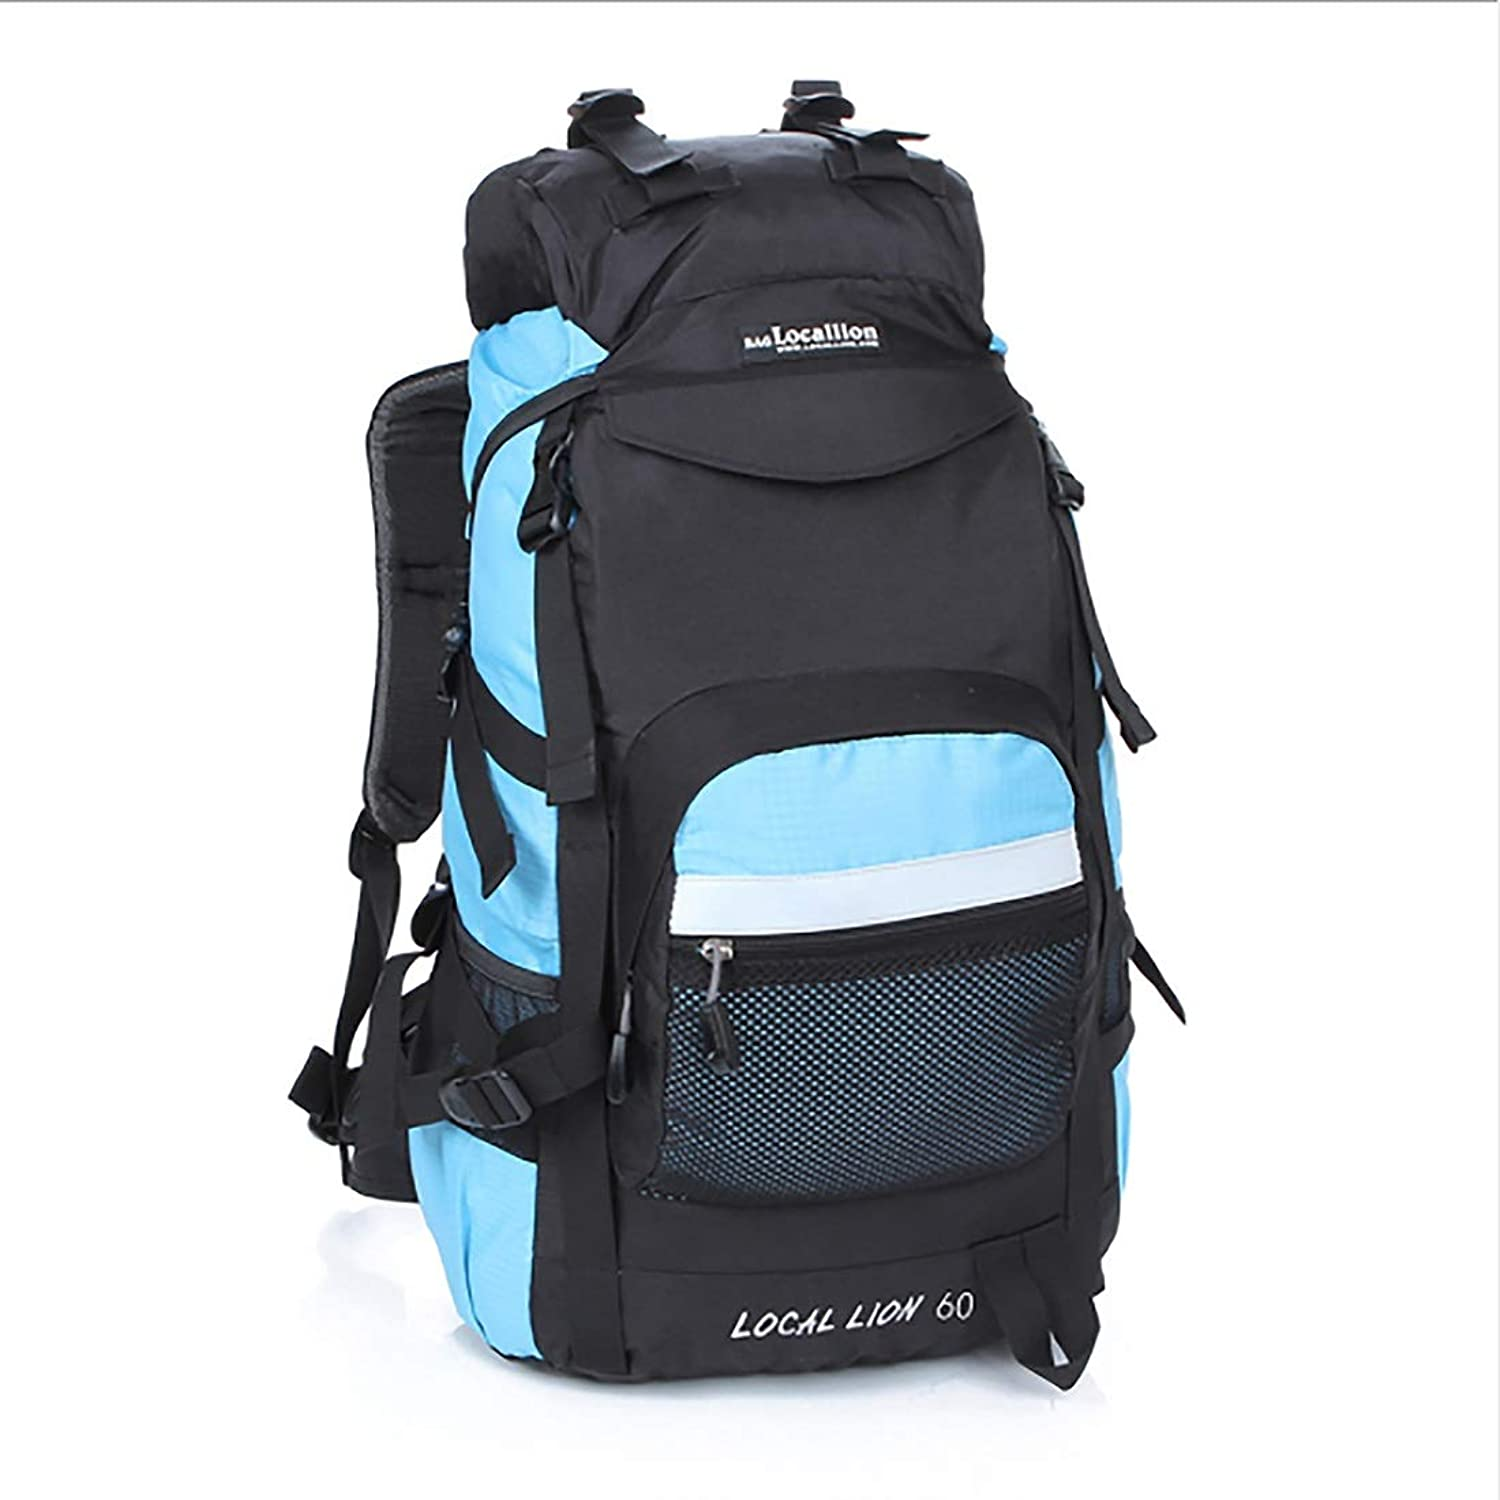 Hyue Mountaineering Backpack Waterproof Nylon Multipurpose Travel by Walk Wild Camping Leisure Sport Neutral Shoulders Suitable for Outside Use (color   Light bluee)